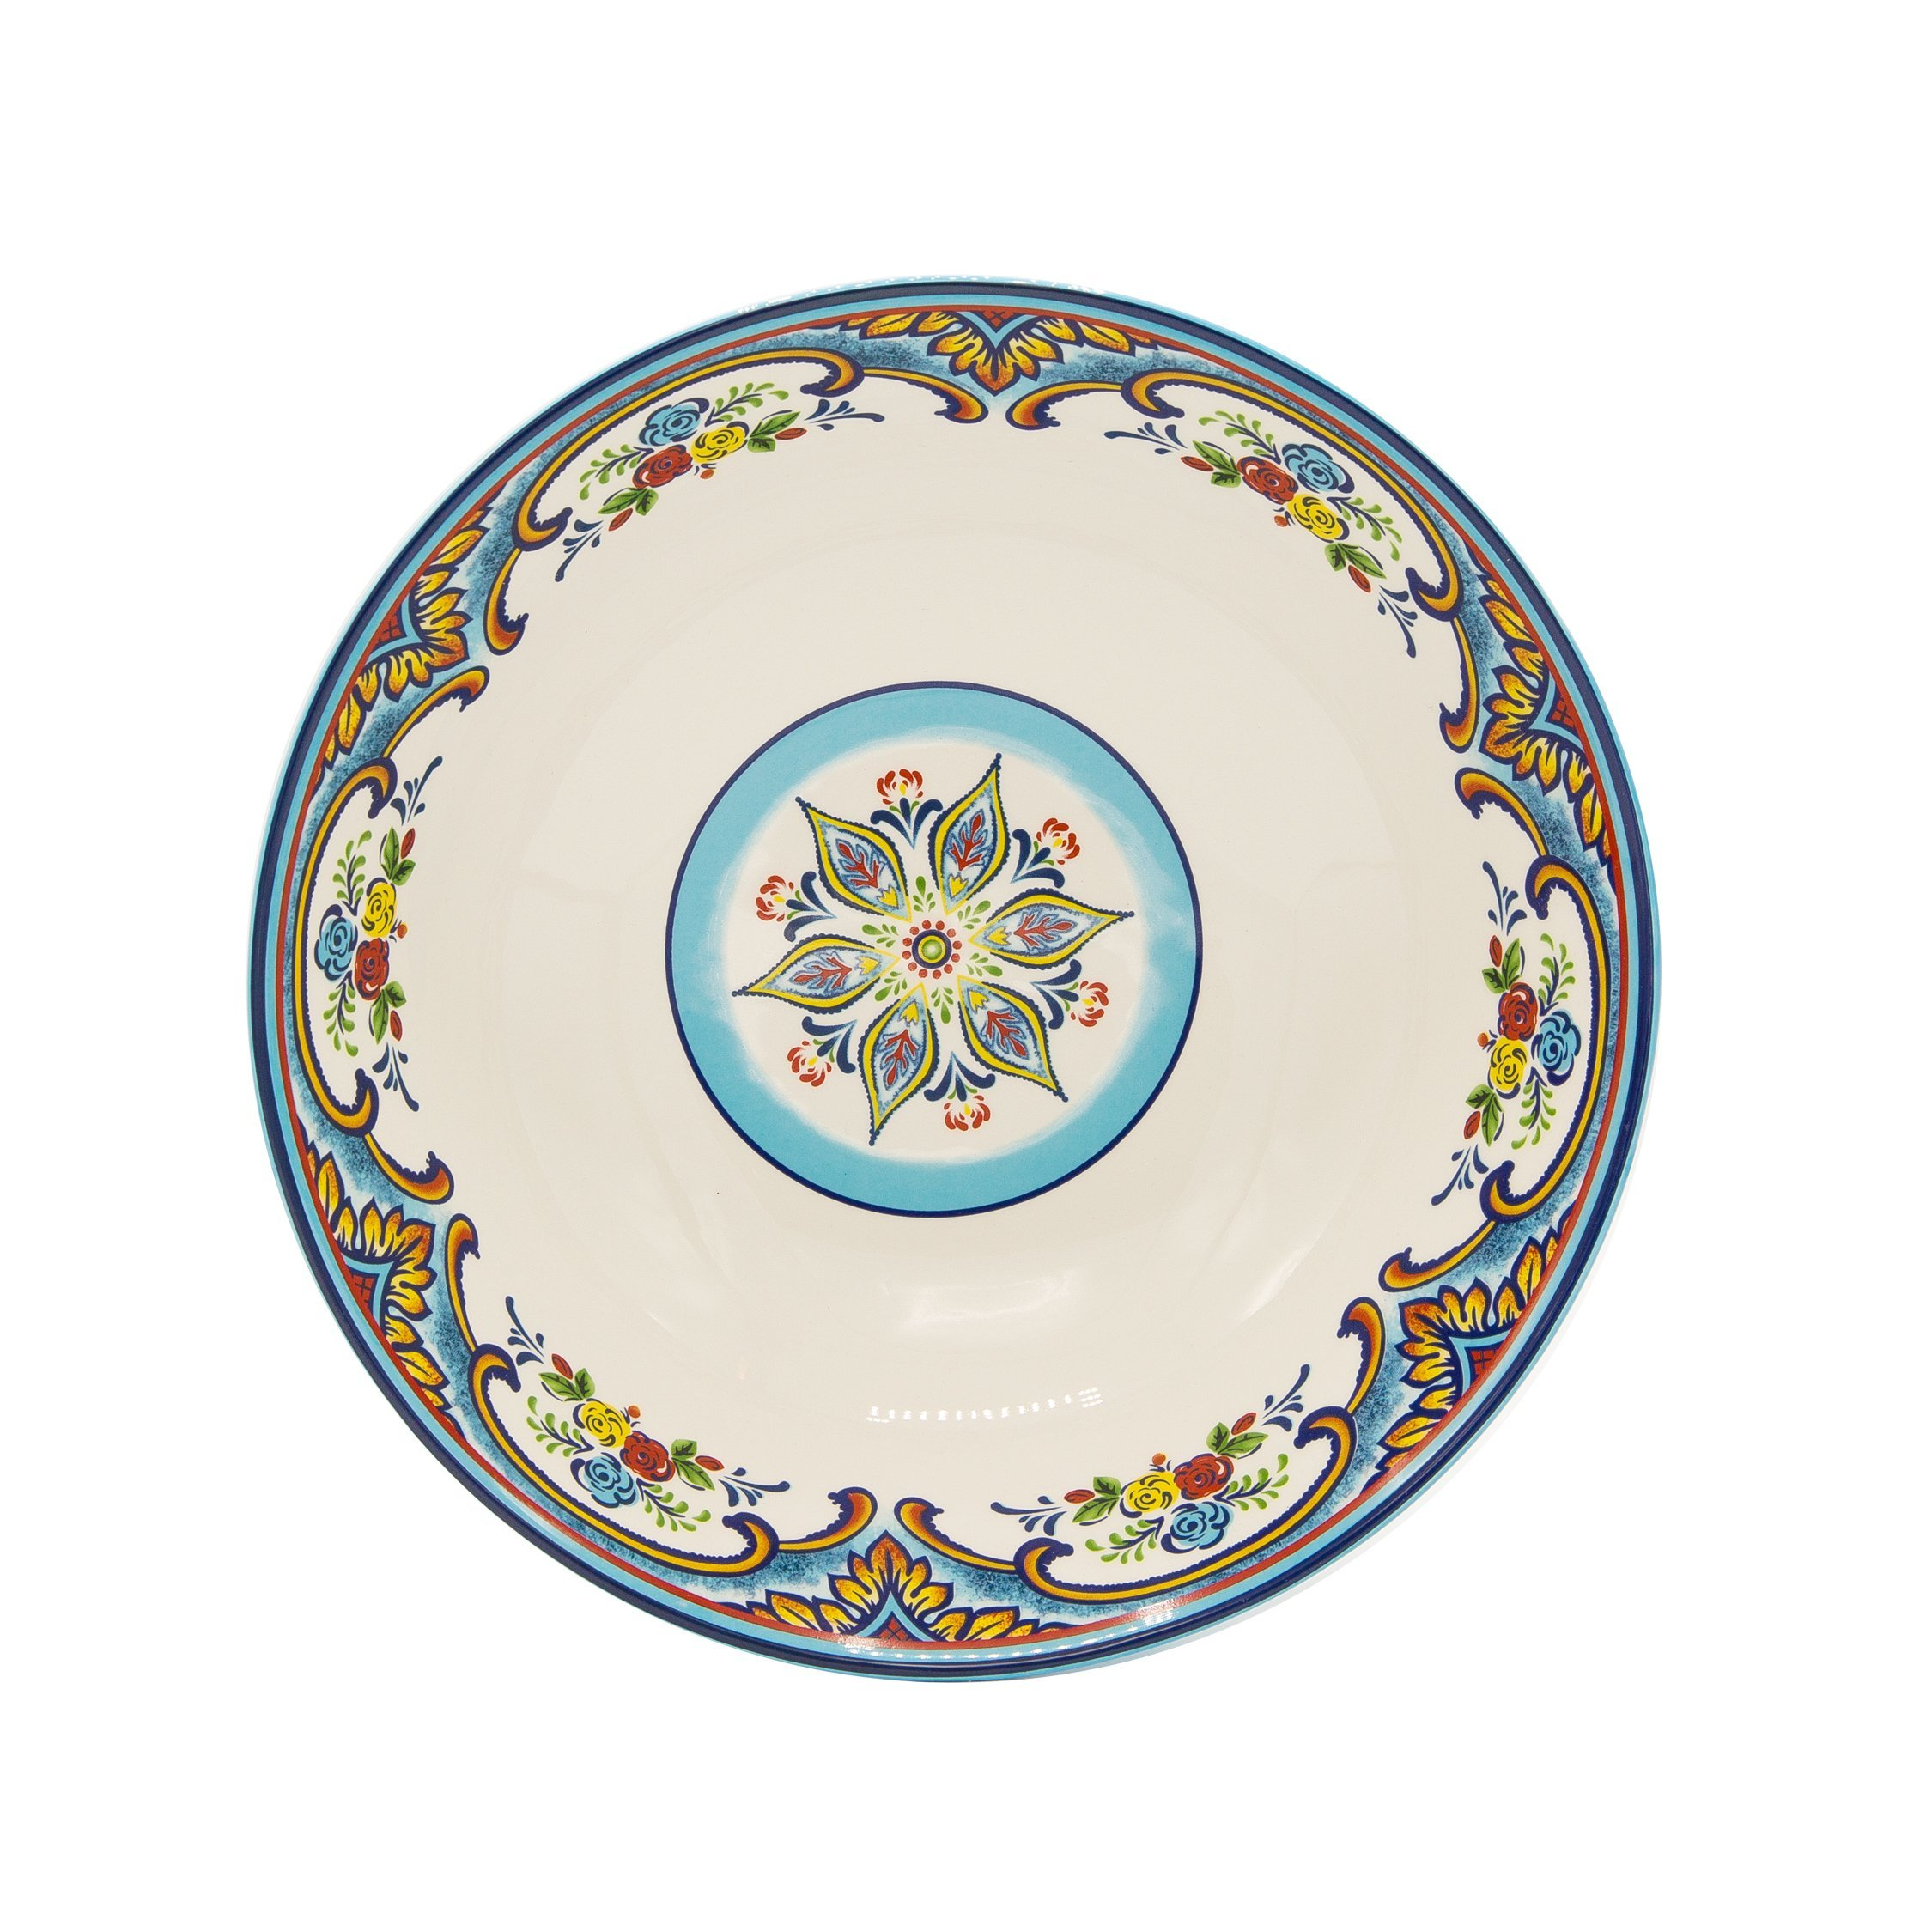 "Euro Ceramica Zanzibar Collection Vibrant 12.75"" Ceramic Round Serving/Salad Bowl, Spanish Floral Design, Multicolor"